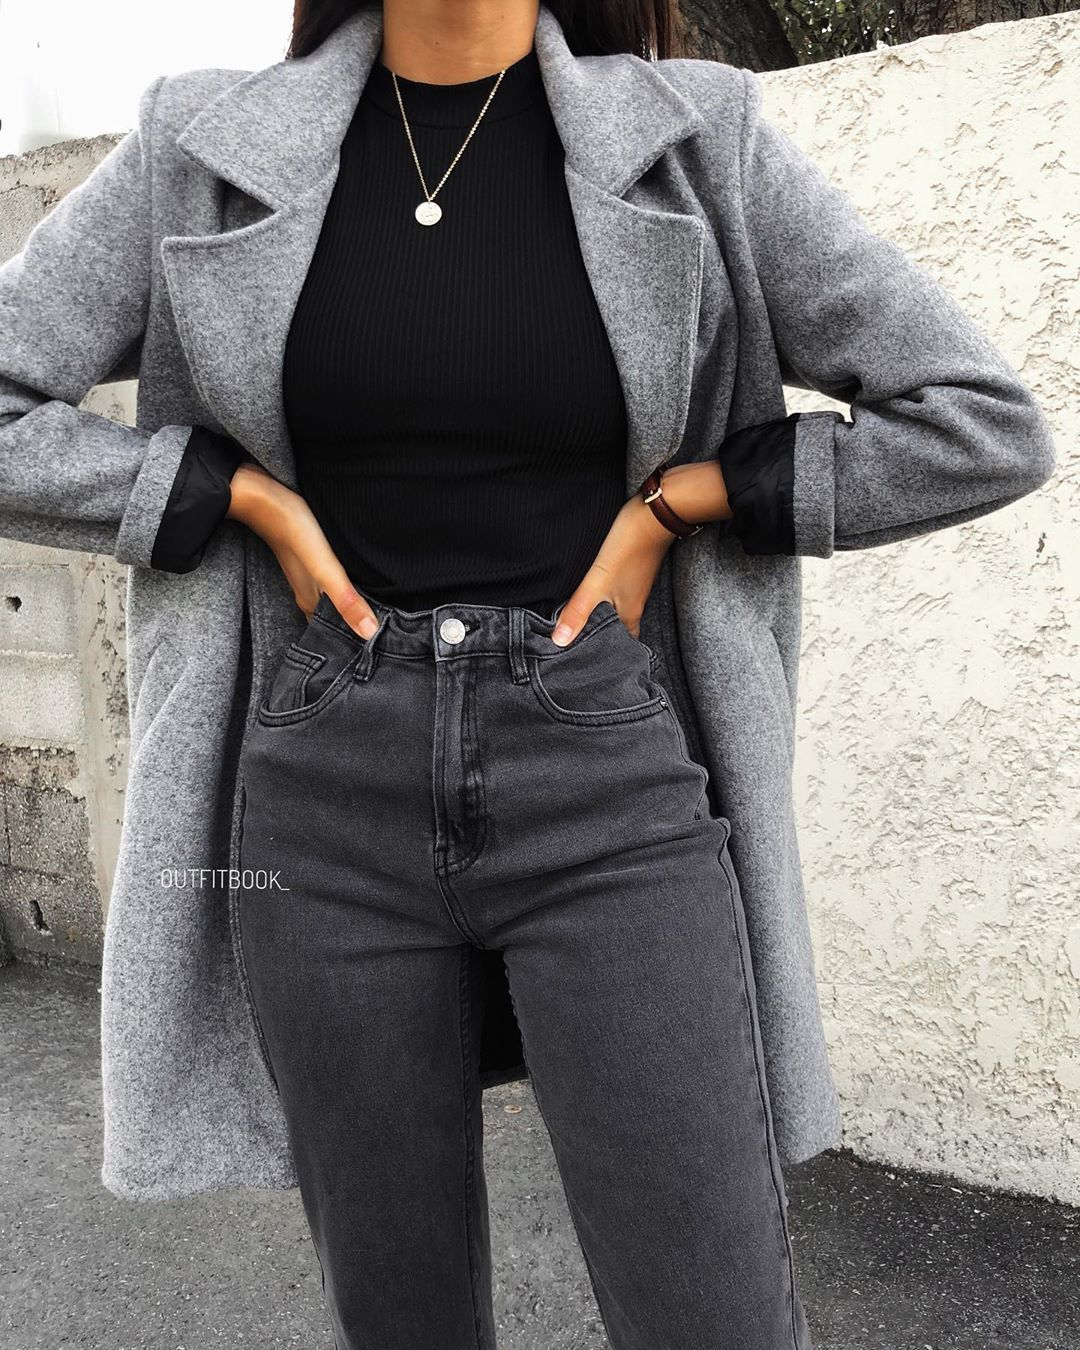 "www.outfitbook.fr on Instagram: ""The Must-Have grey coat is BACK IN STOCK"